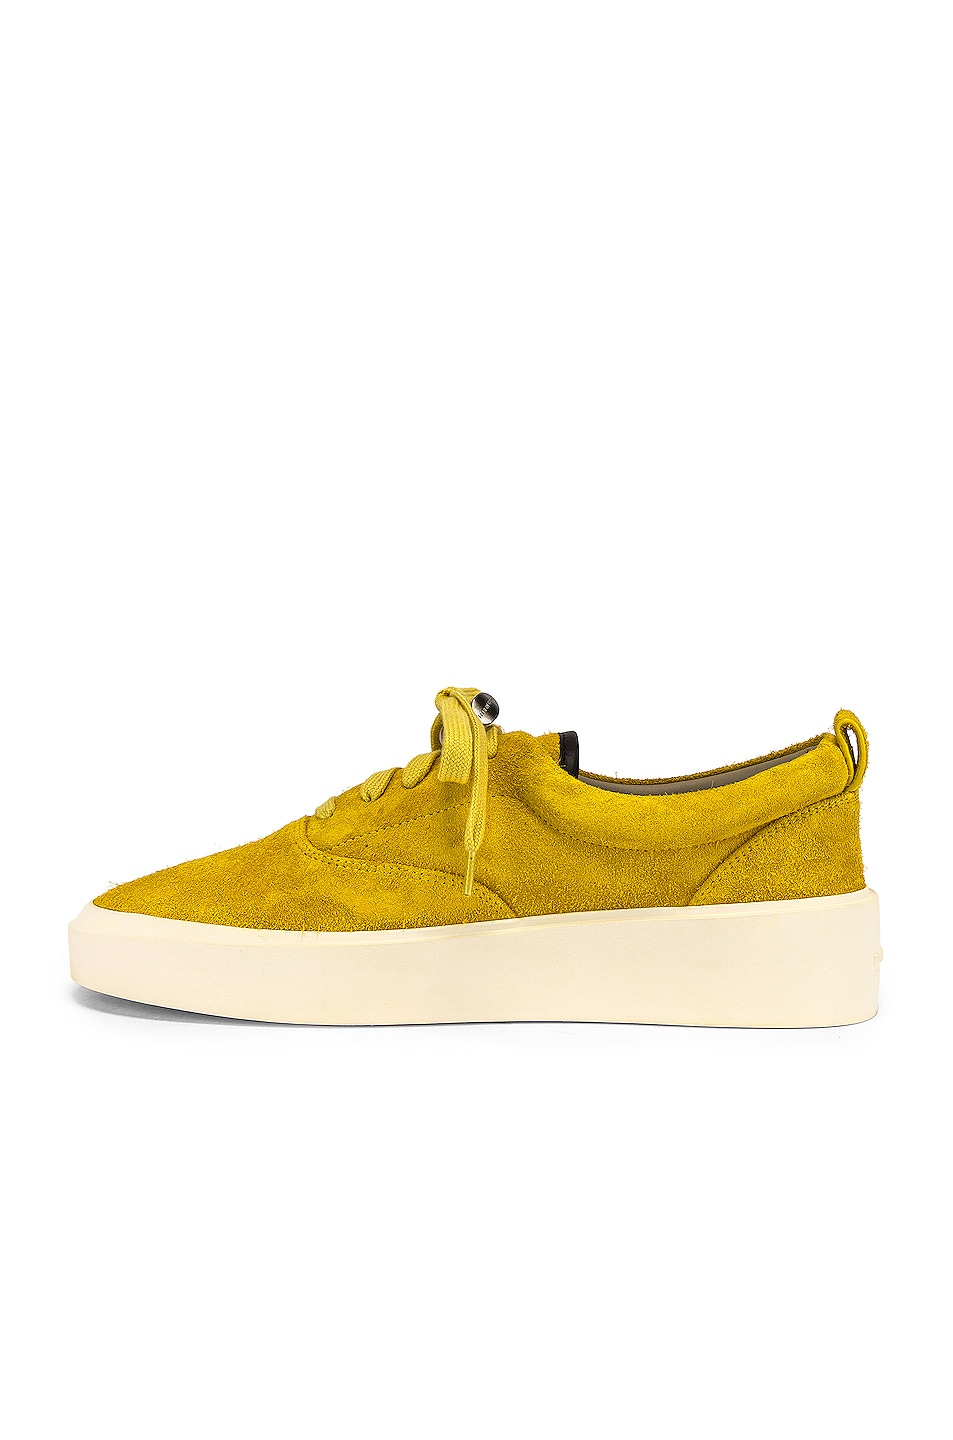 Image 5 of Fear of God 101 Lace Up Sneaker in Garden Glove